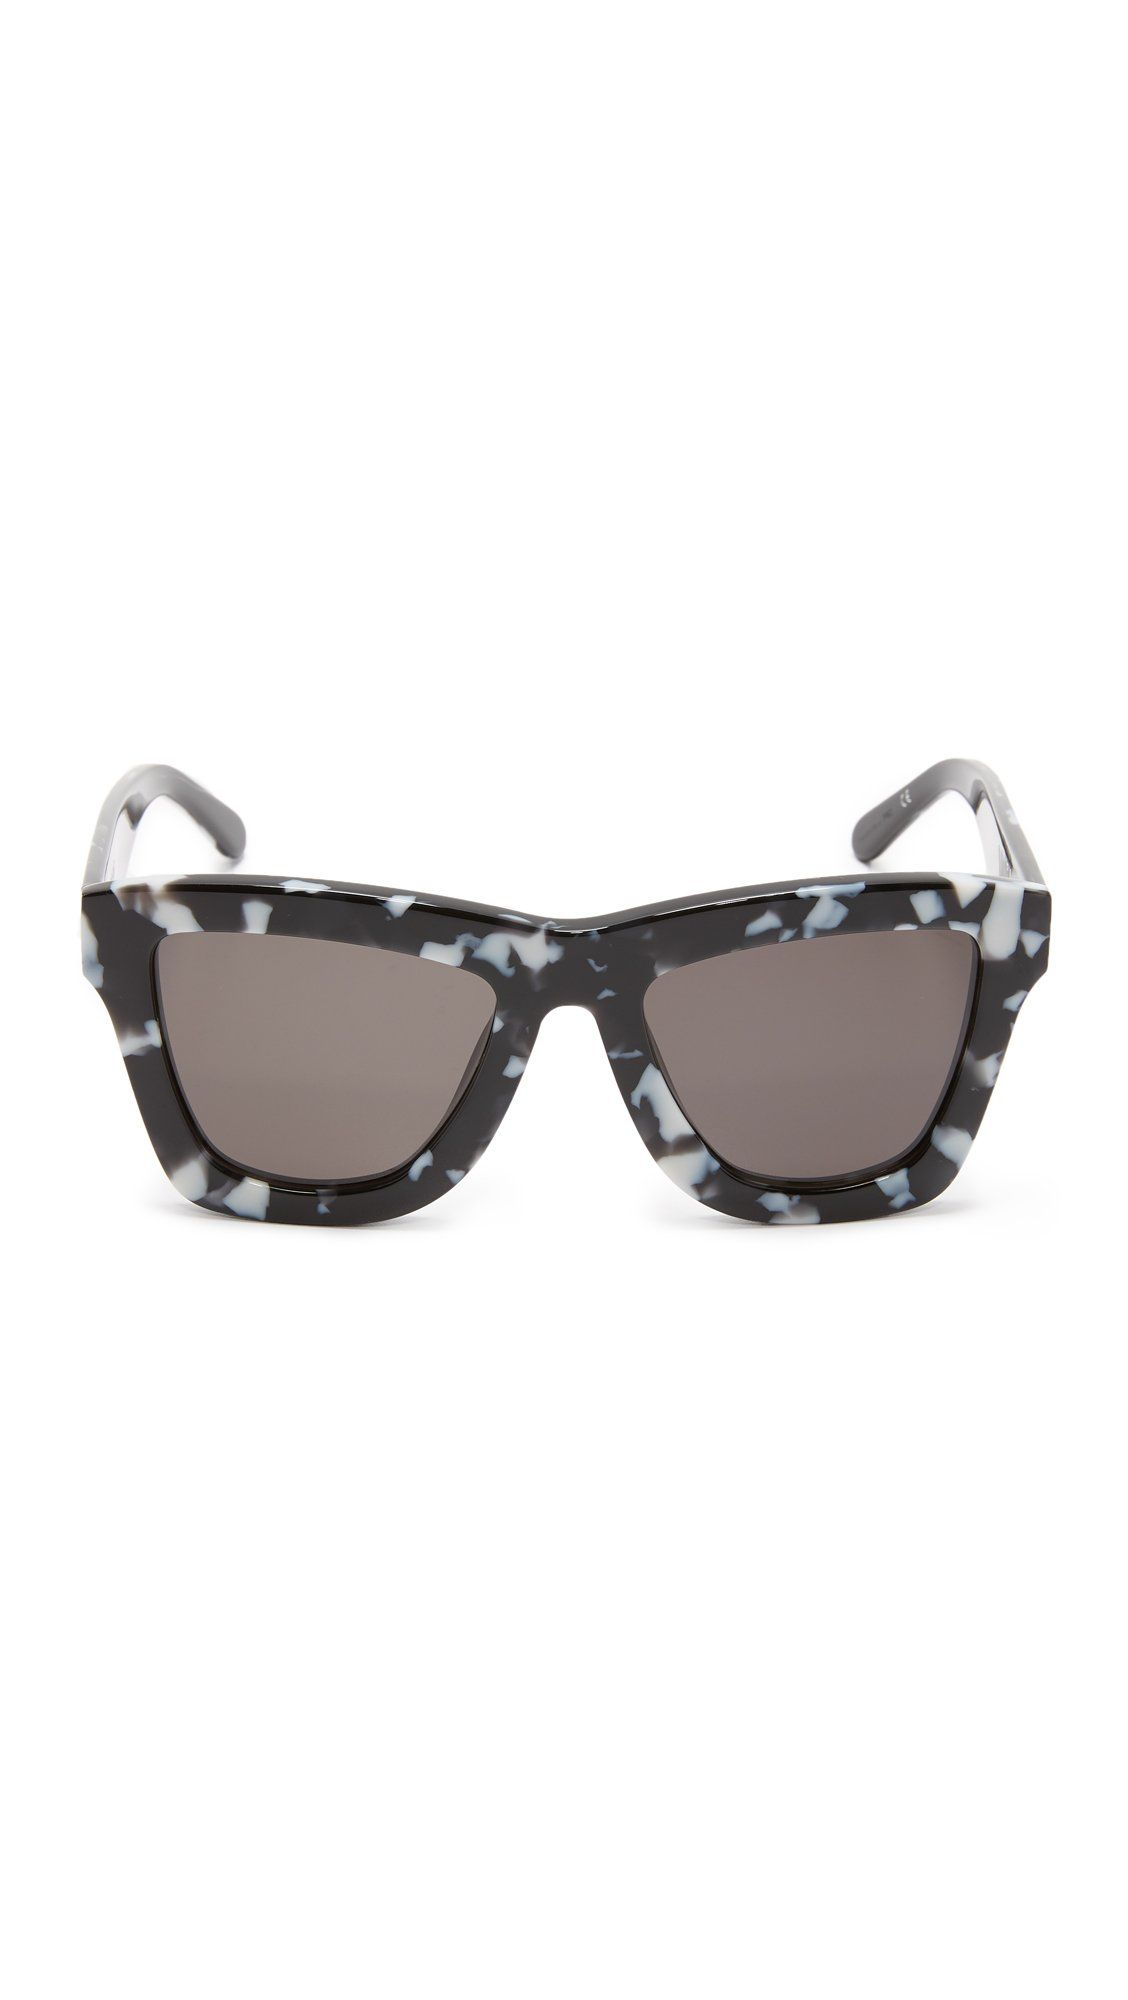 a3740e22c1e Valley Eyewear Womens DB II Sunglasses Black Marble Black One Size     Want